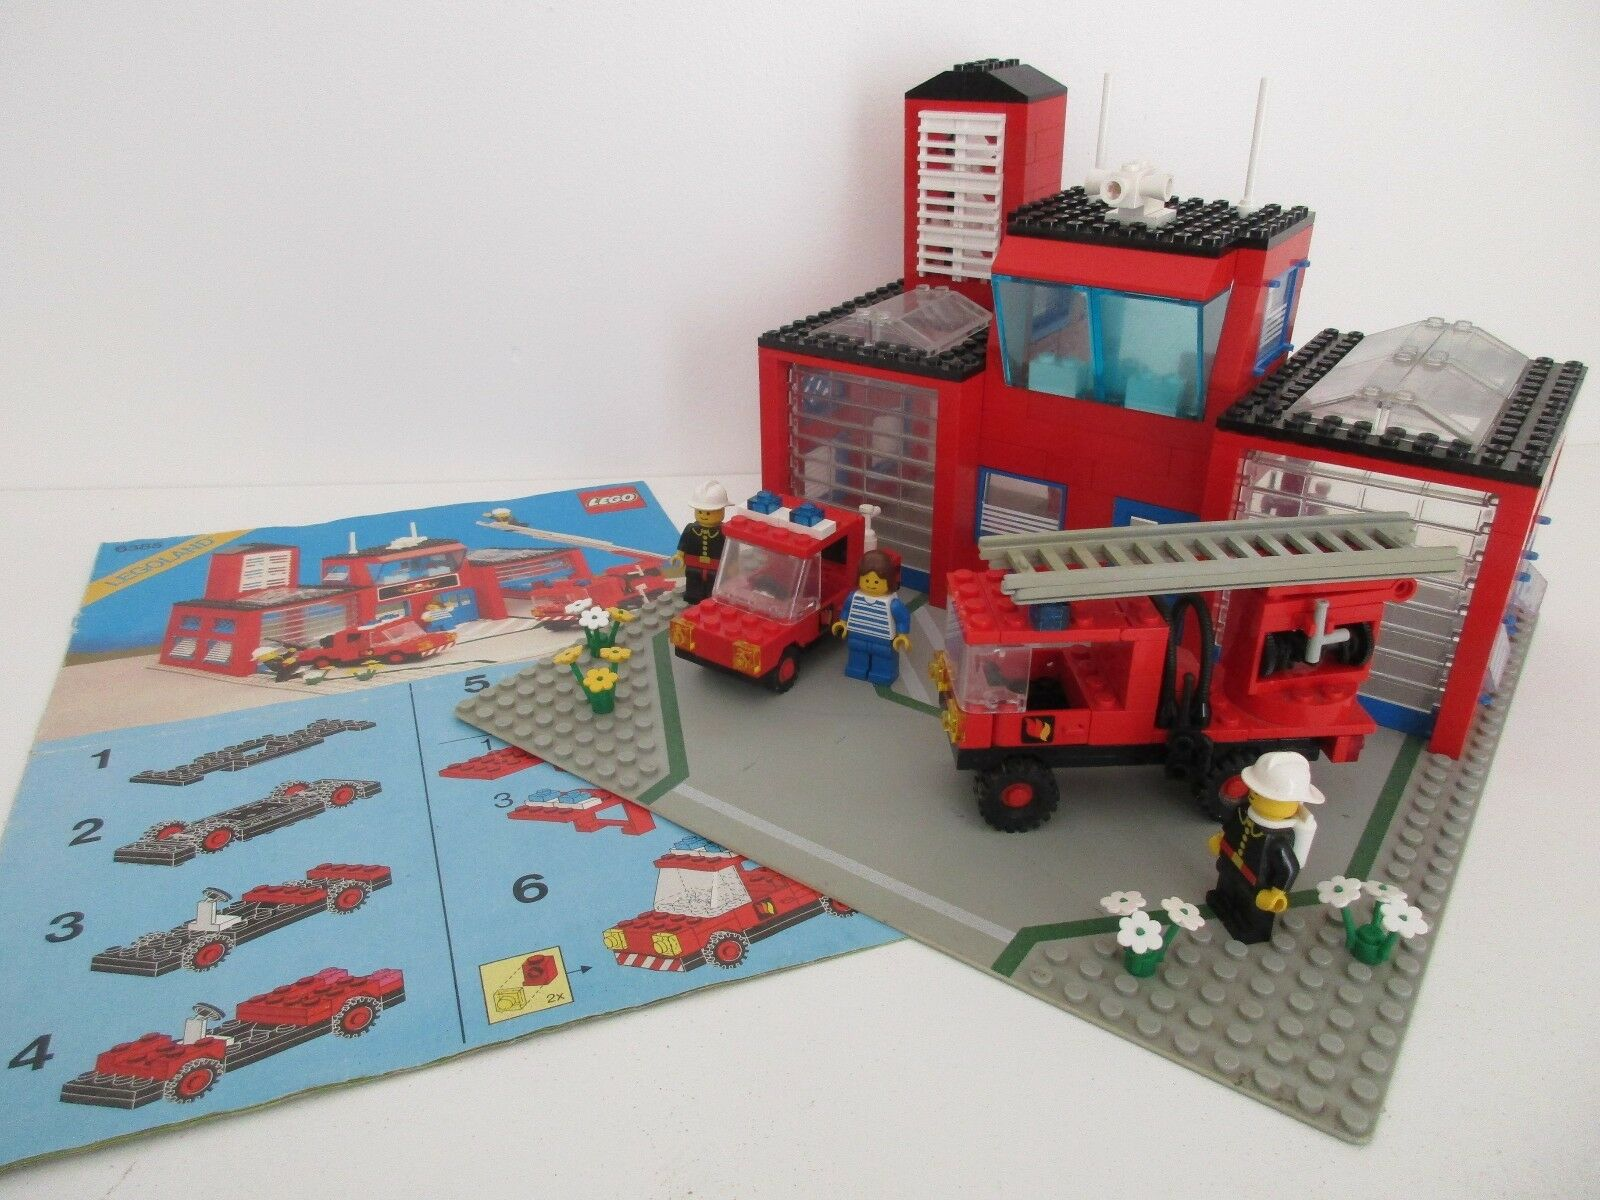 LEGO LEGOLAND 6385 - FIRE HOUSE Caserne Pompiers - Complet avec Instructions